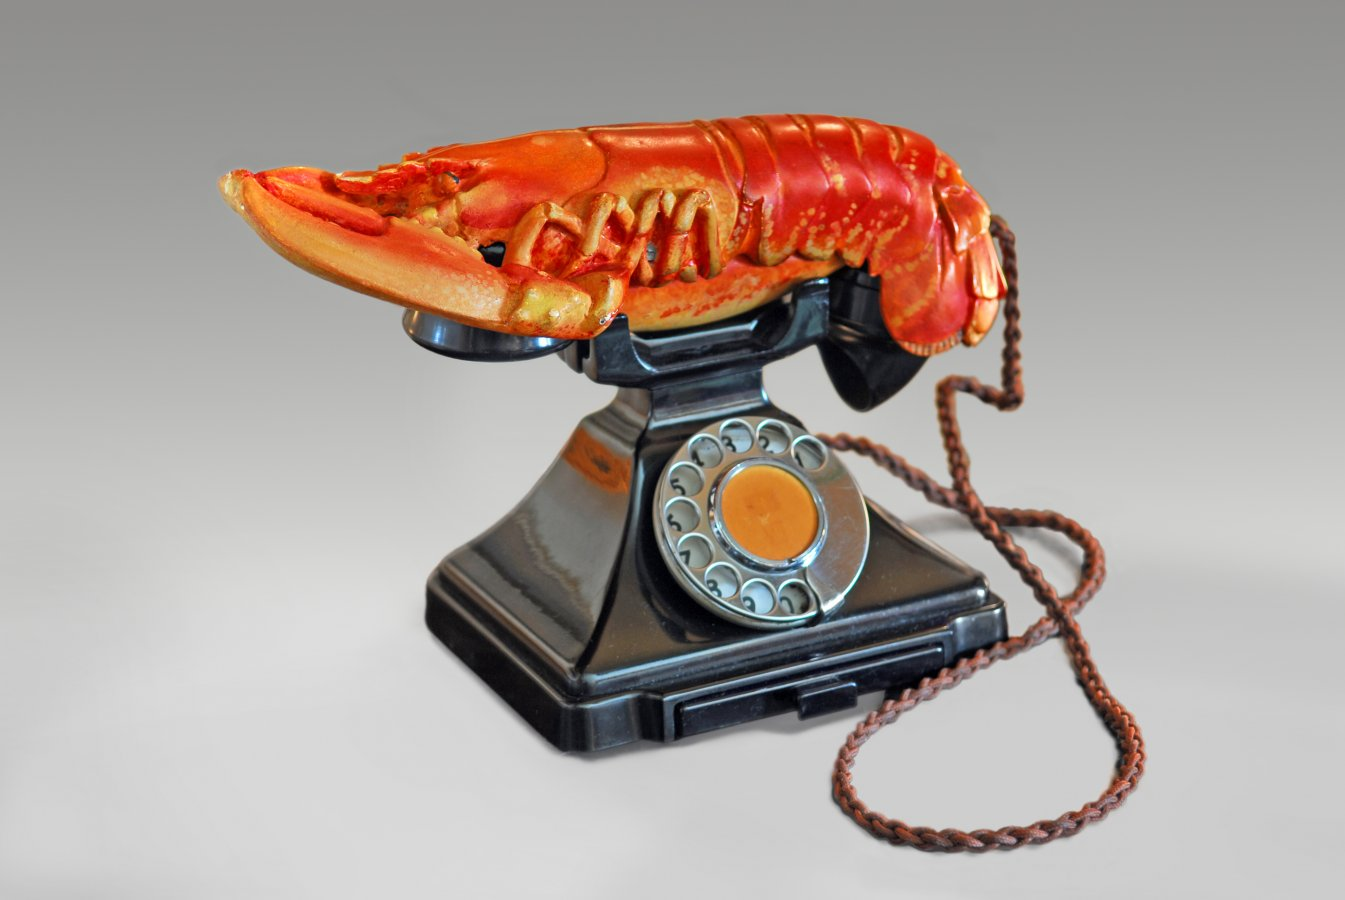 Salvador Dalí, Hummertelefon, 1938, West Dean College of Arts and Conservation © Fundació Gala-Salvador Dalí, Figueres/ VG Bild-Kunst, Bonn 2020